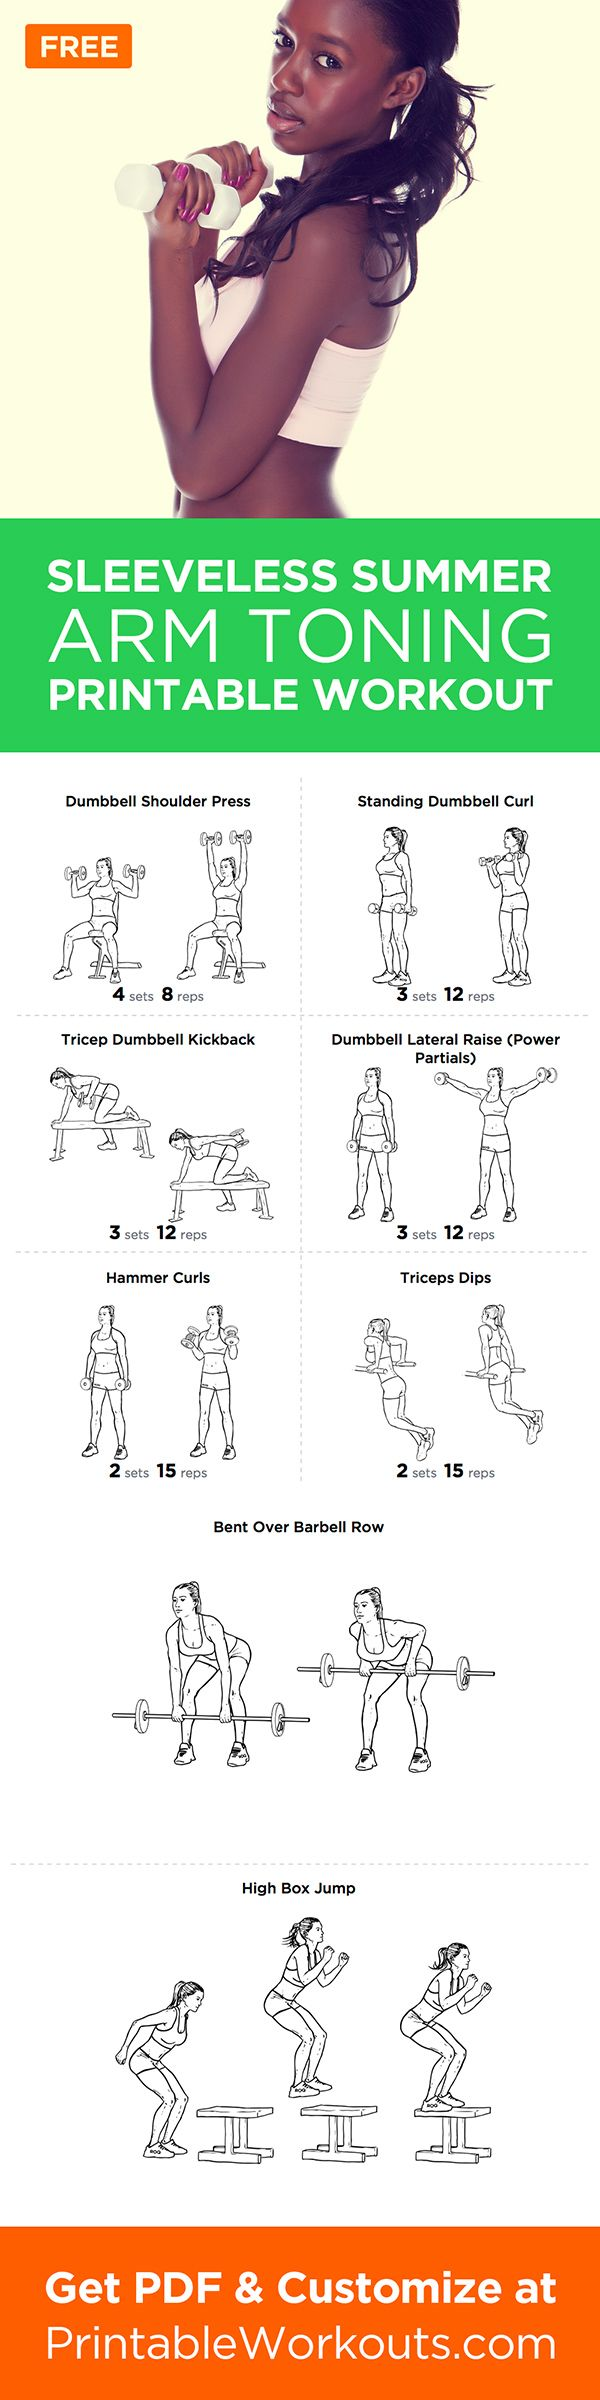 Worried about wearing all those sleeveless shirts this summer season? Try this 15-minute workout and you will be well prepared!